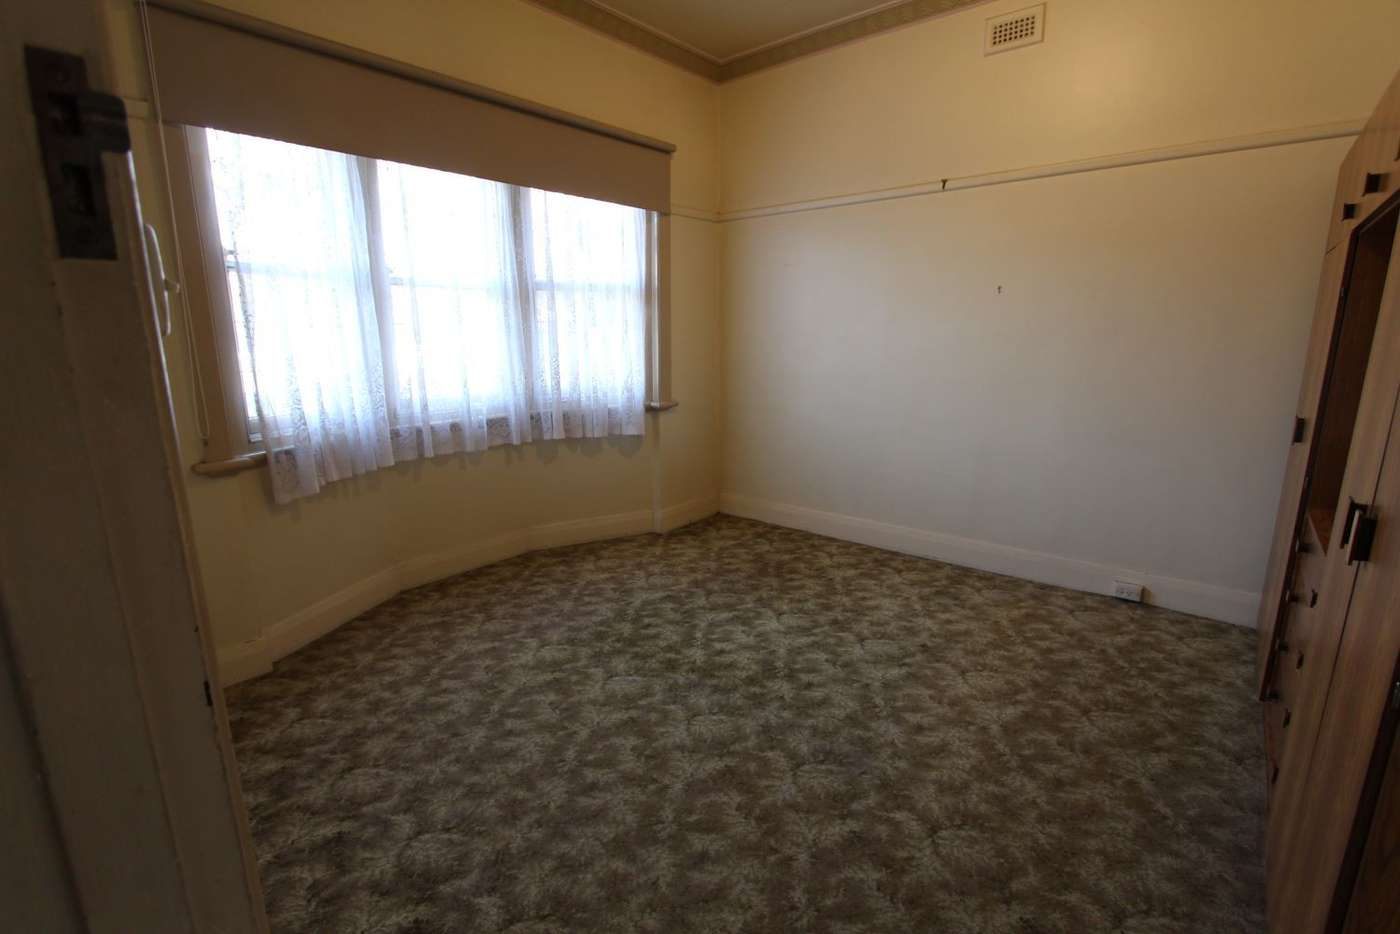 Sixth view of Homely house listing, 44 Arnold Street, Bendigo VIC 3550